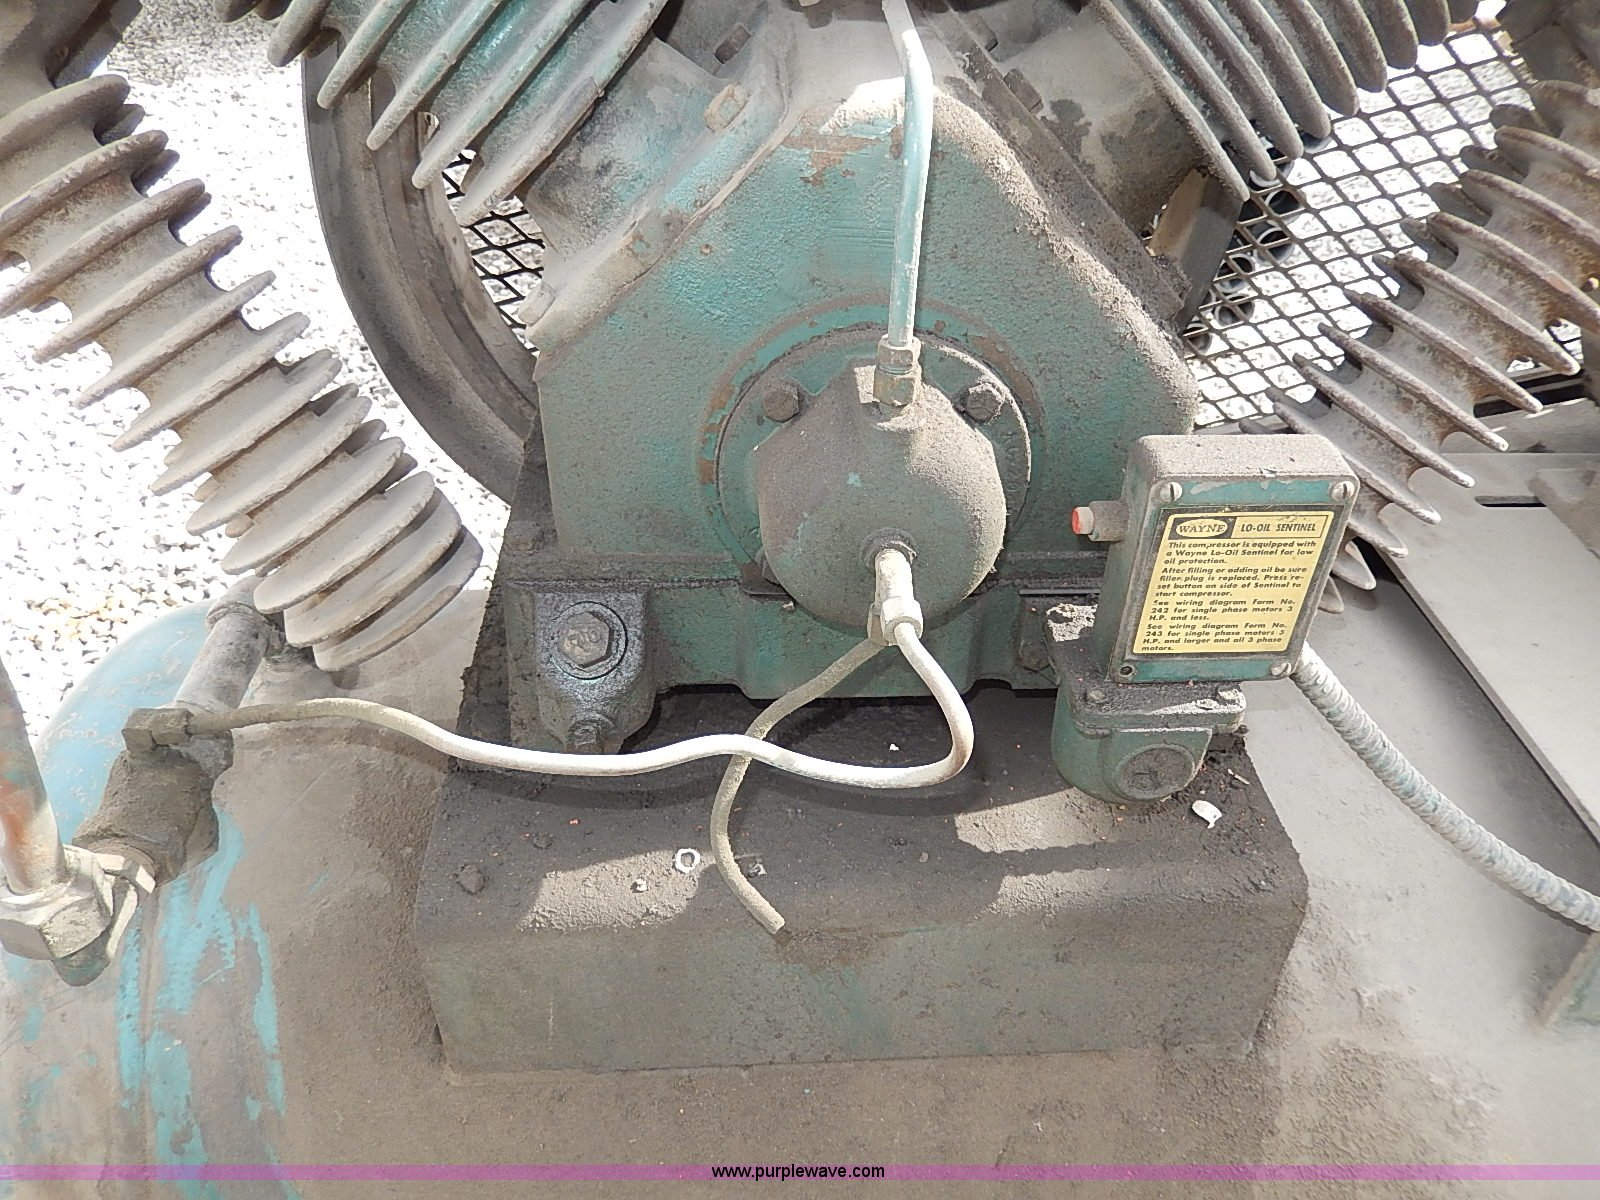 Wayne Air Compressor Item Ax9079 Sold April 30 Vehicles Complete 7387 Wiring Diagrams Full Size In New Window